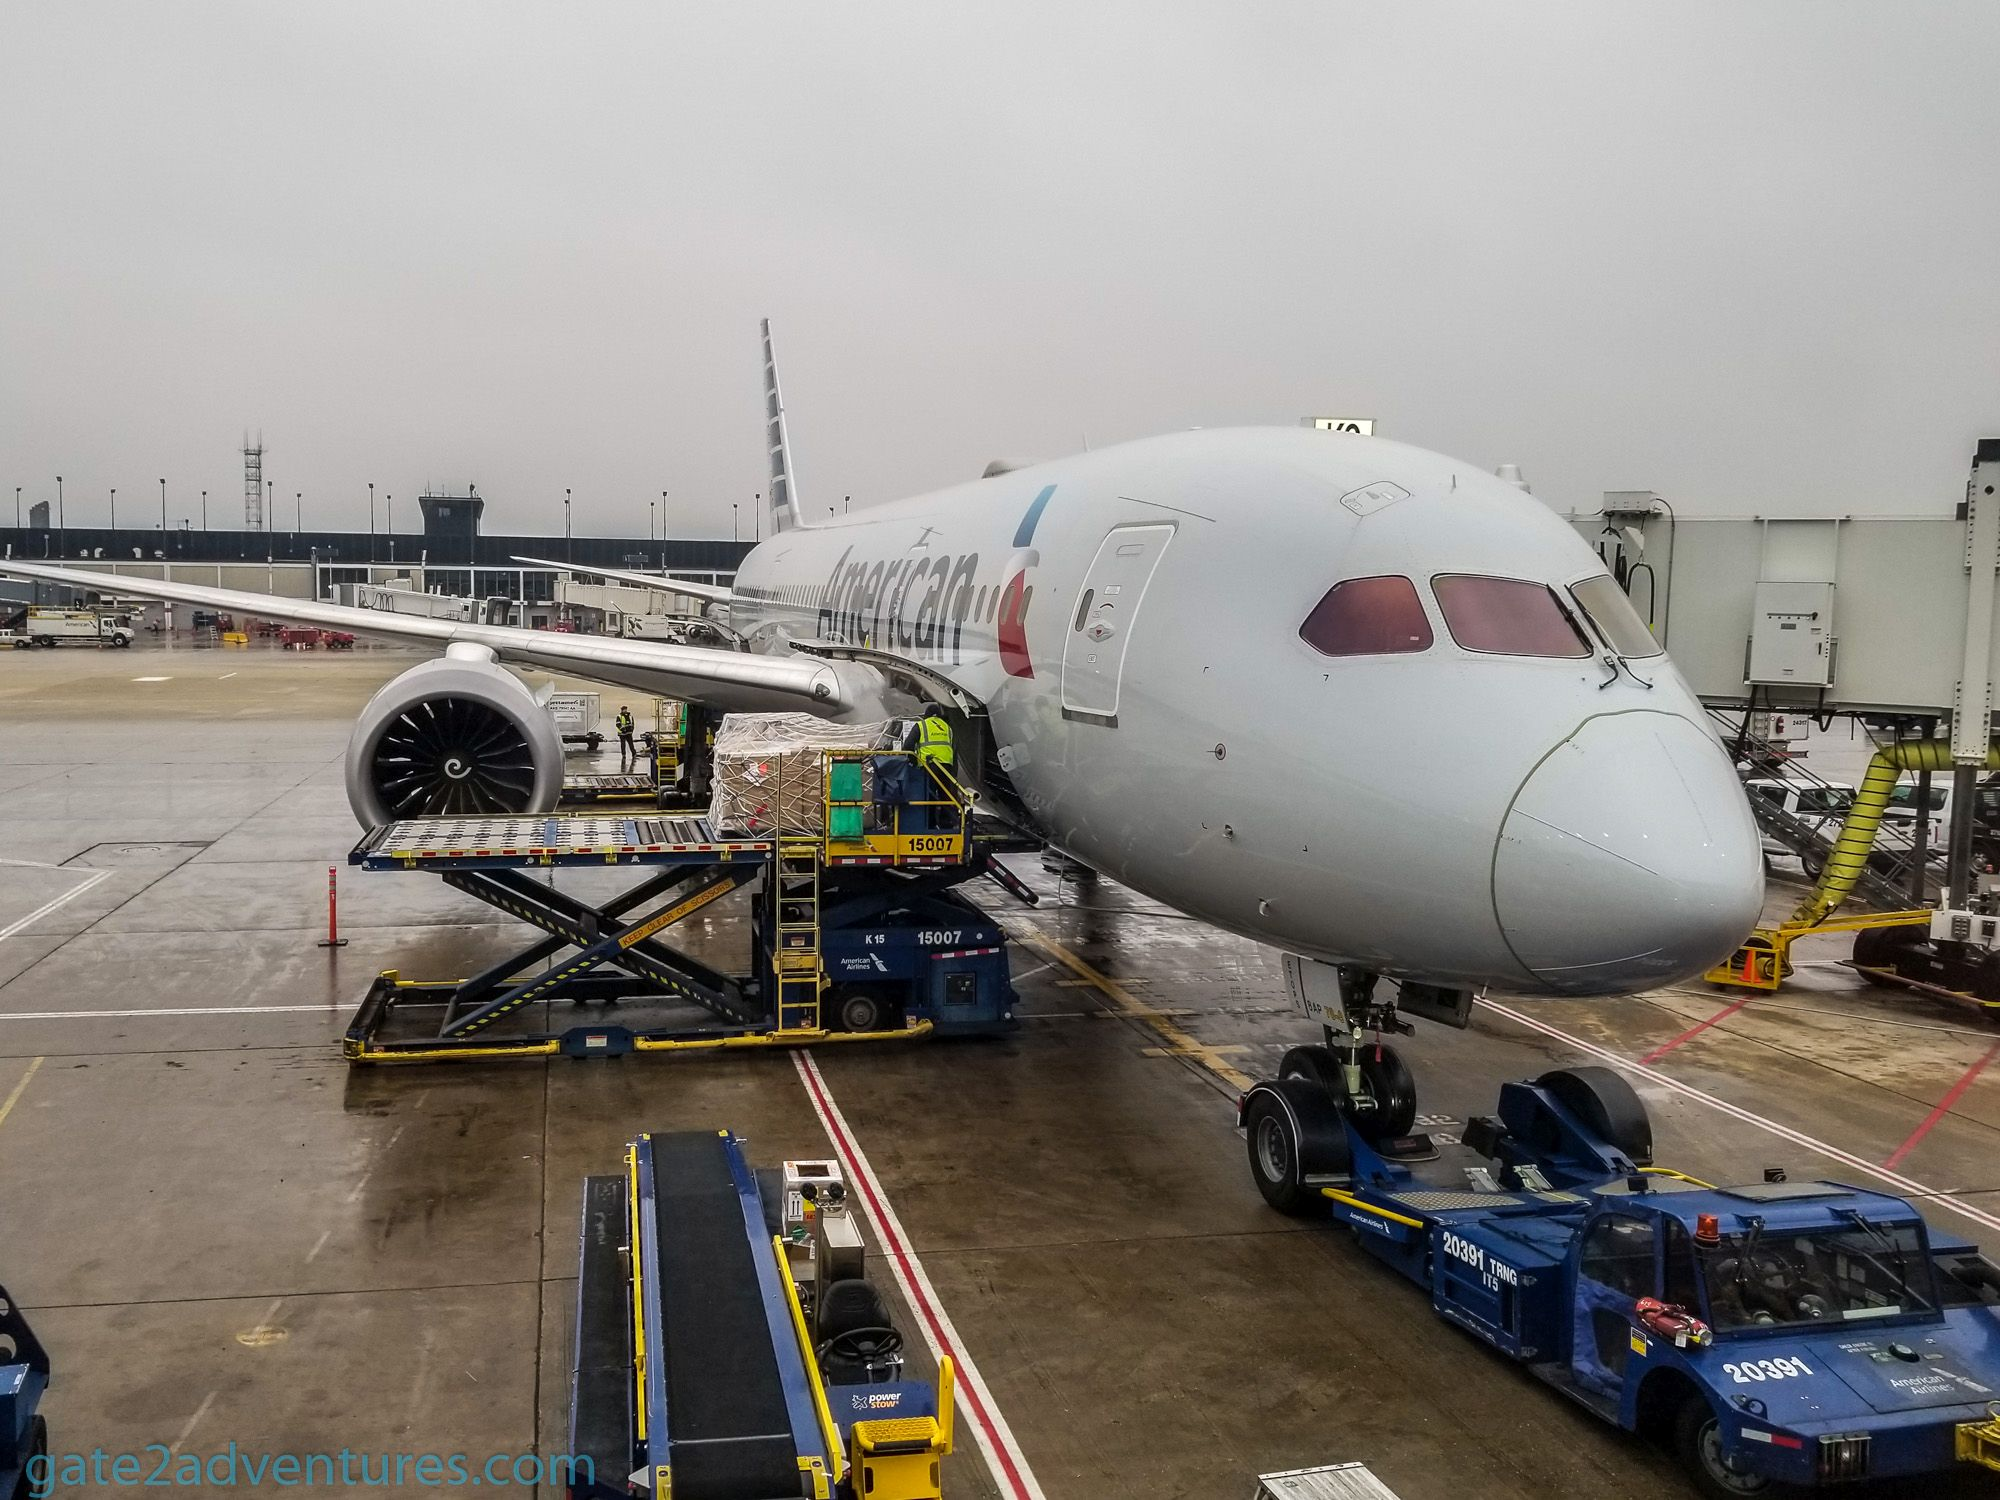 Flight Review: American Airlines Business Class – Boeing 787 Dreamliner Chicago (ORD) to London (LHR)